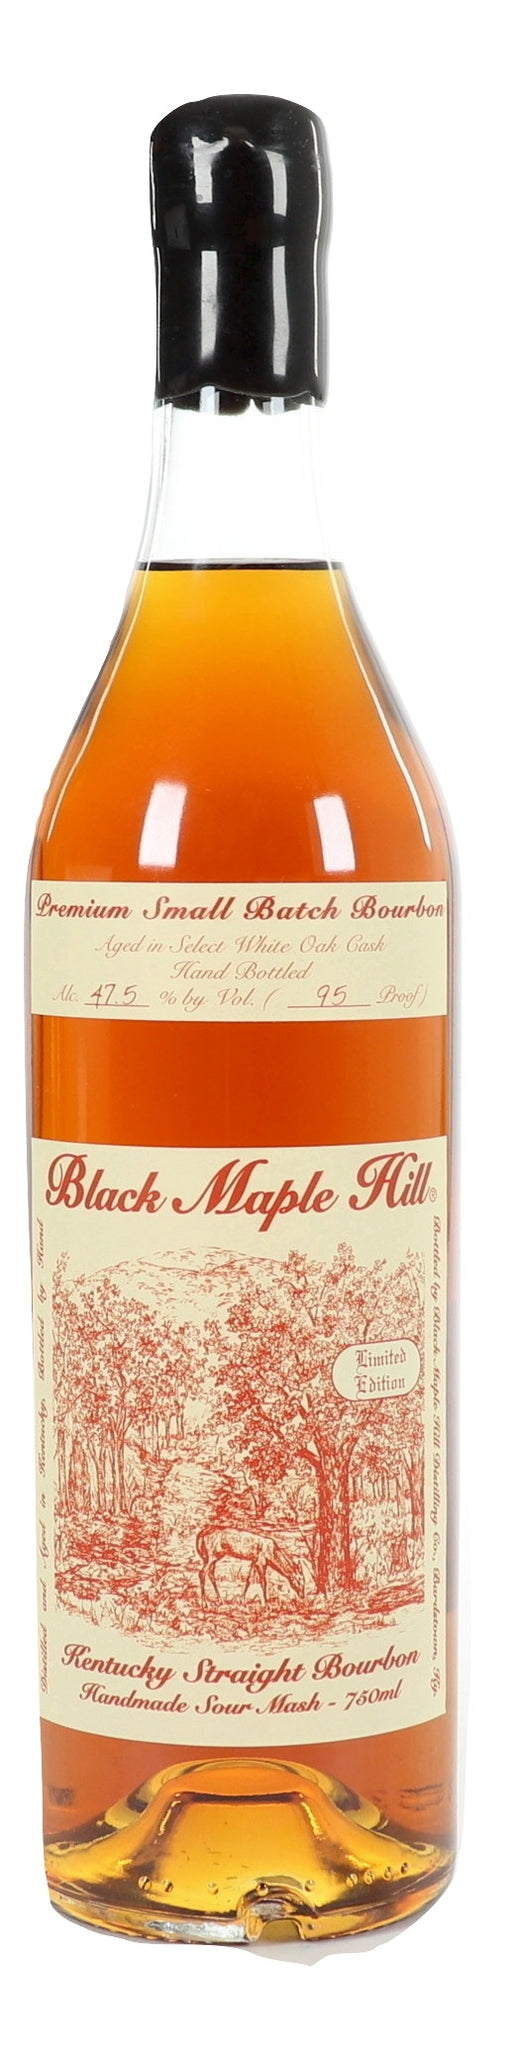 Black Maple Hill Small Batch Bourbon For Sale - NativeSpiritsOnline